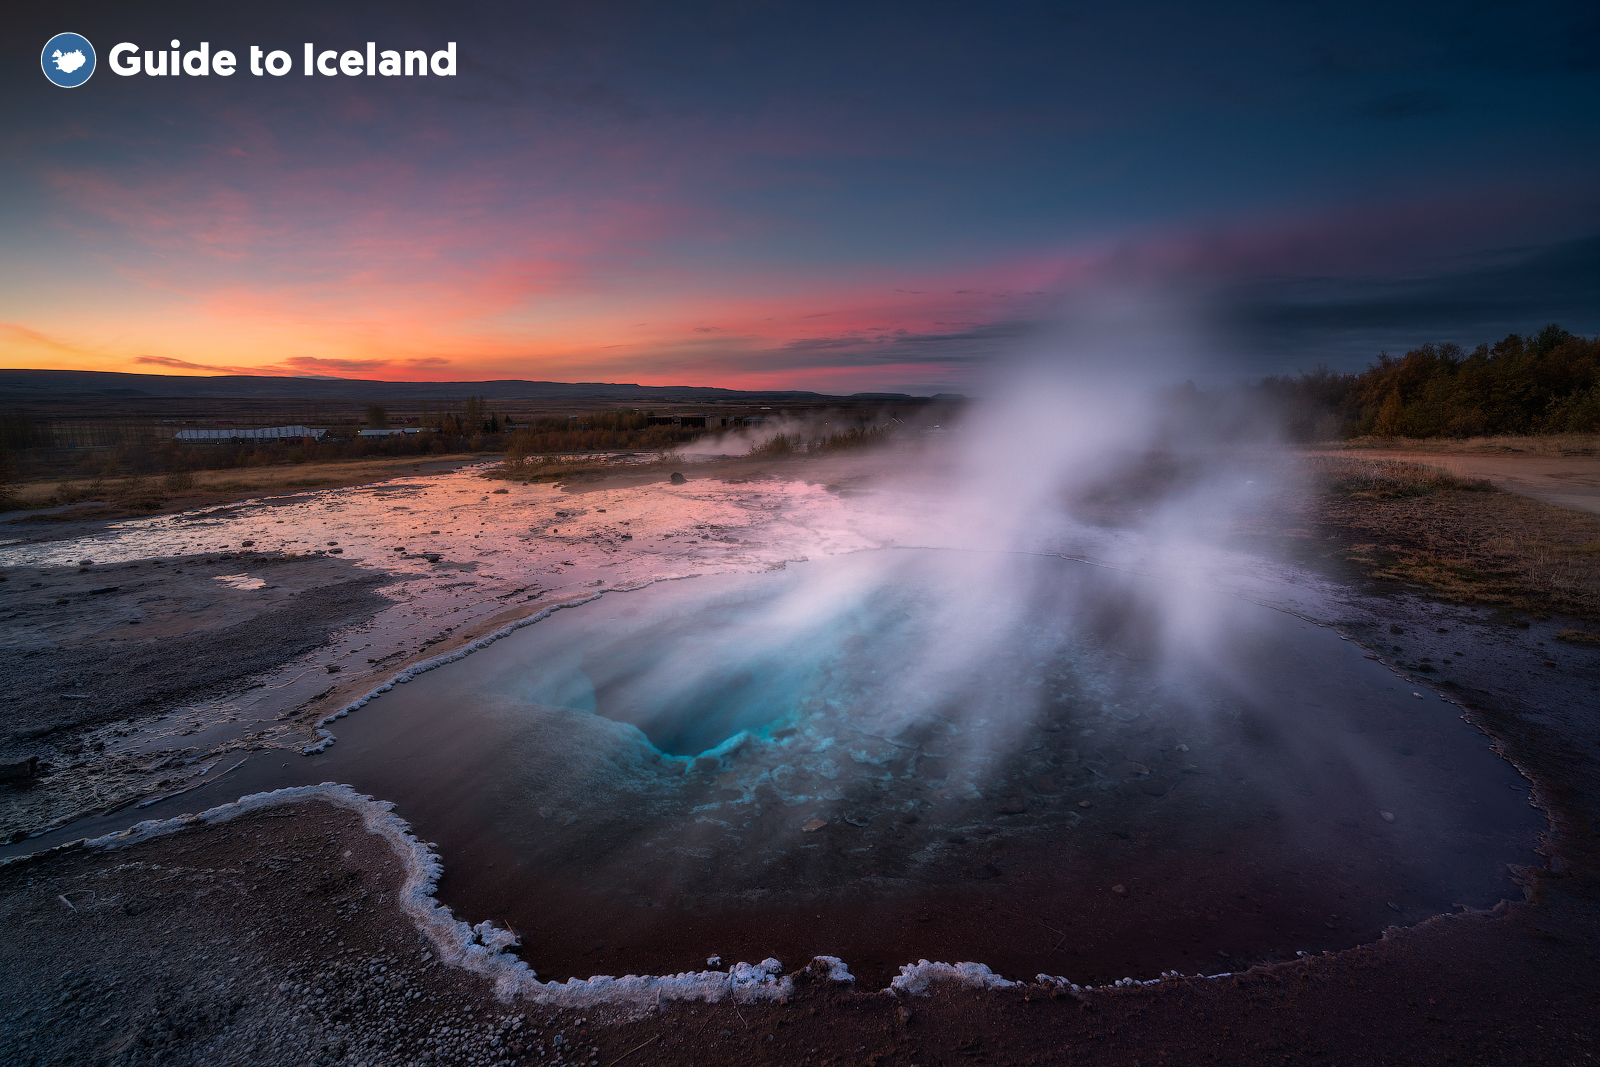 The mineral rich waters of a geyser in the Geysir Geothermal Area.